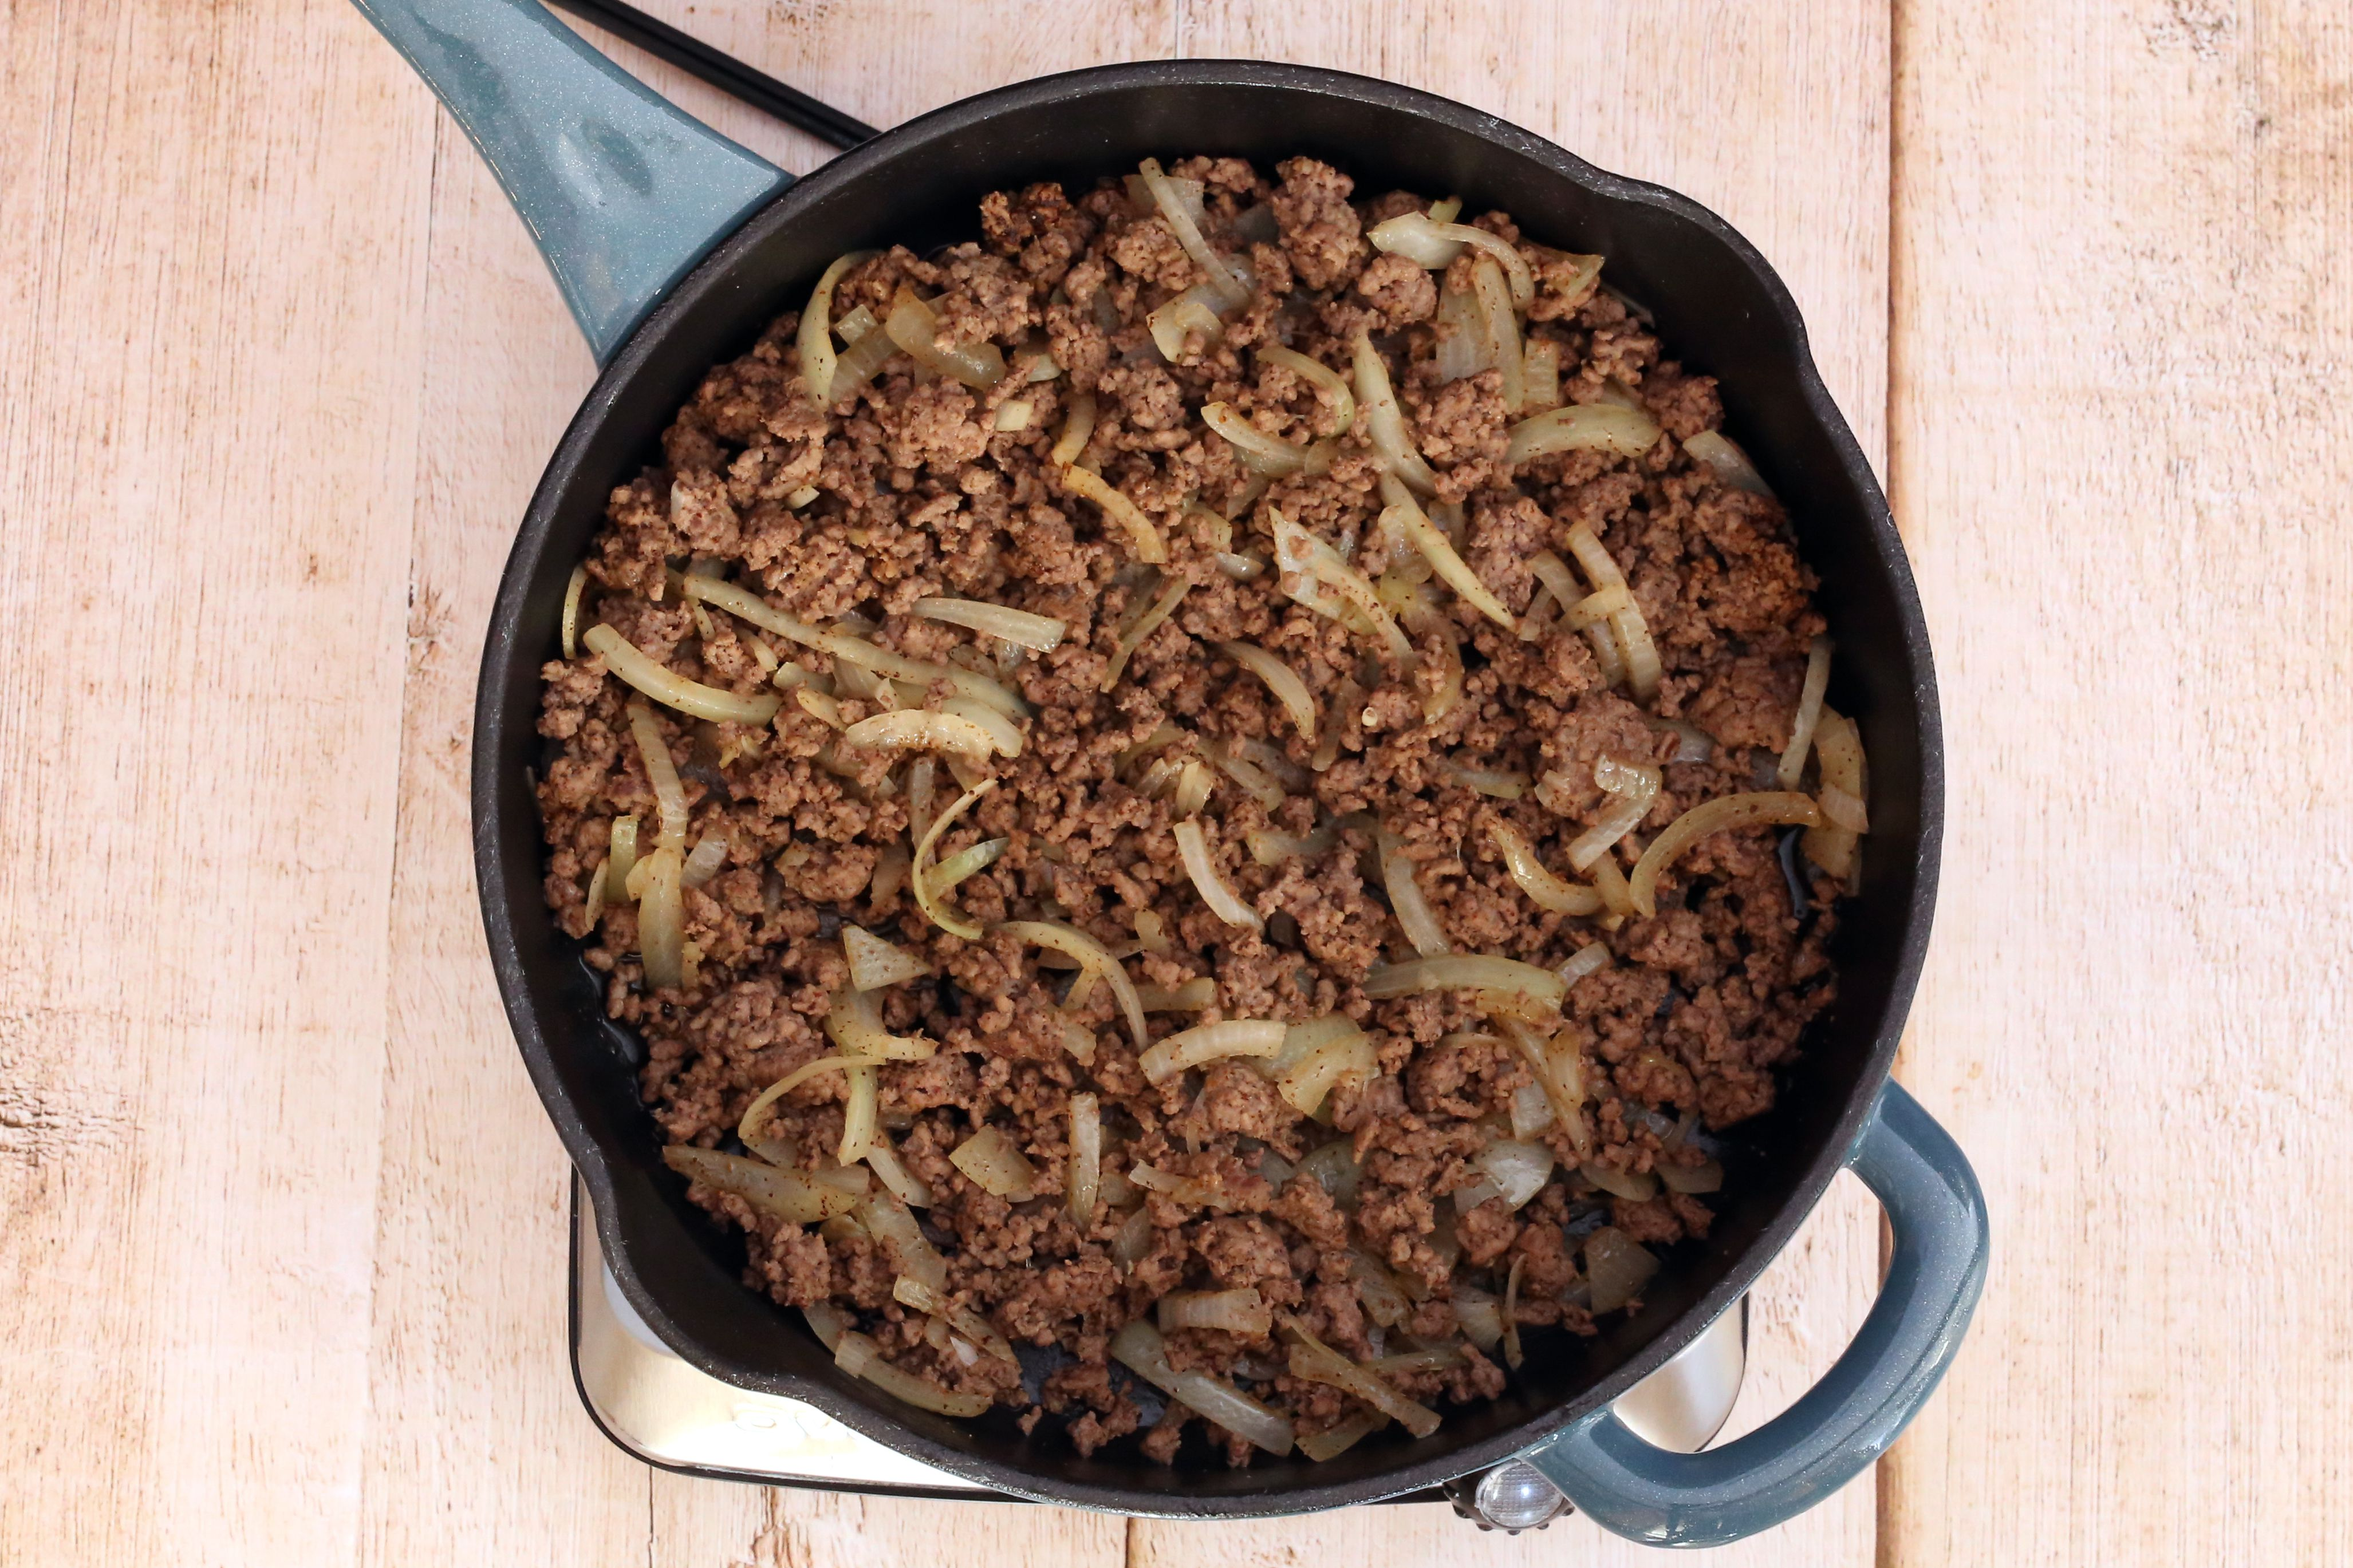 Brown the ground beef and onions